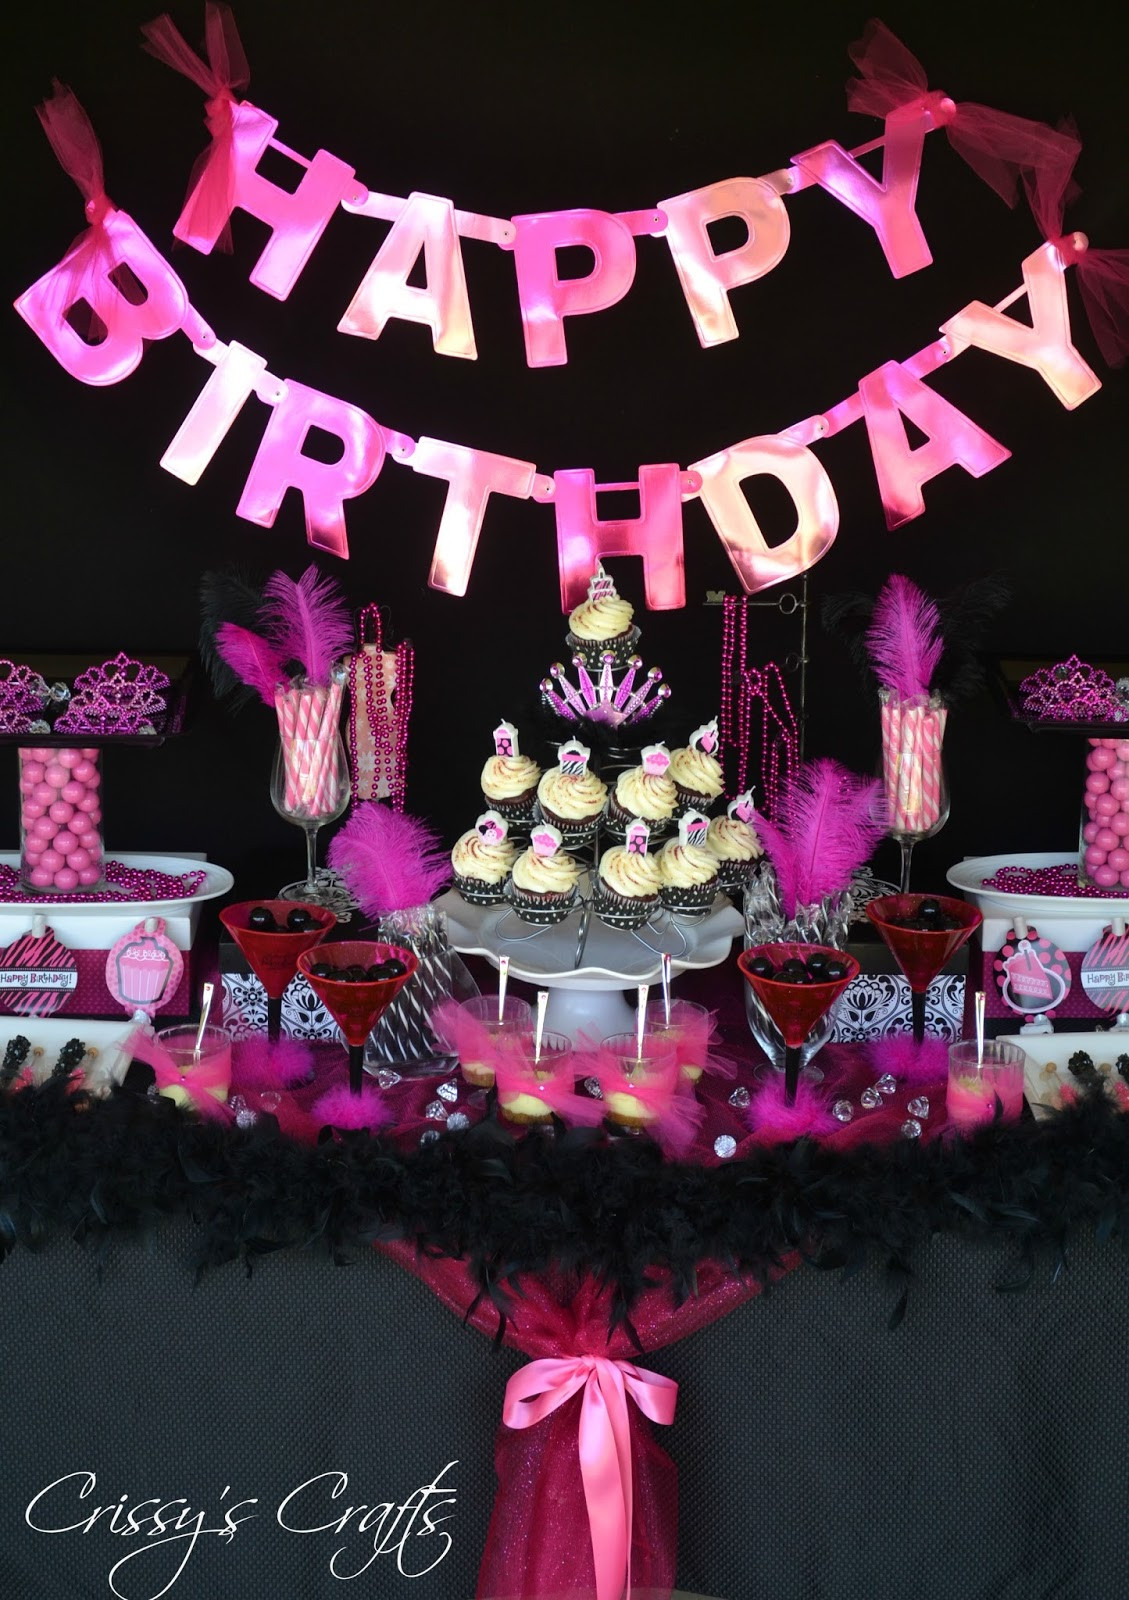 Best ideas about Pink Birthday Party Decorations . Save or Pin Crissy s Crafts Glam Pink and Black Another Year of Now.